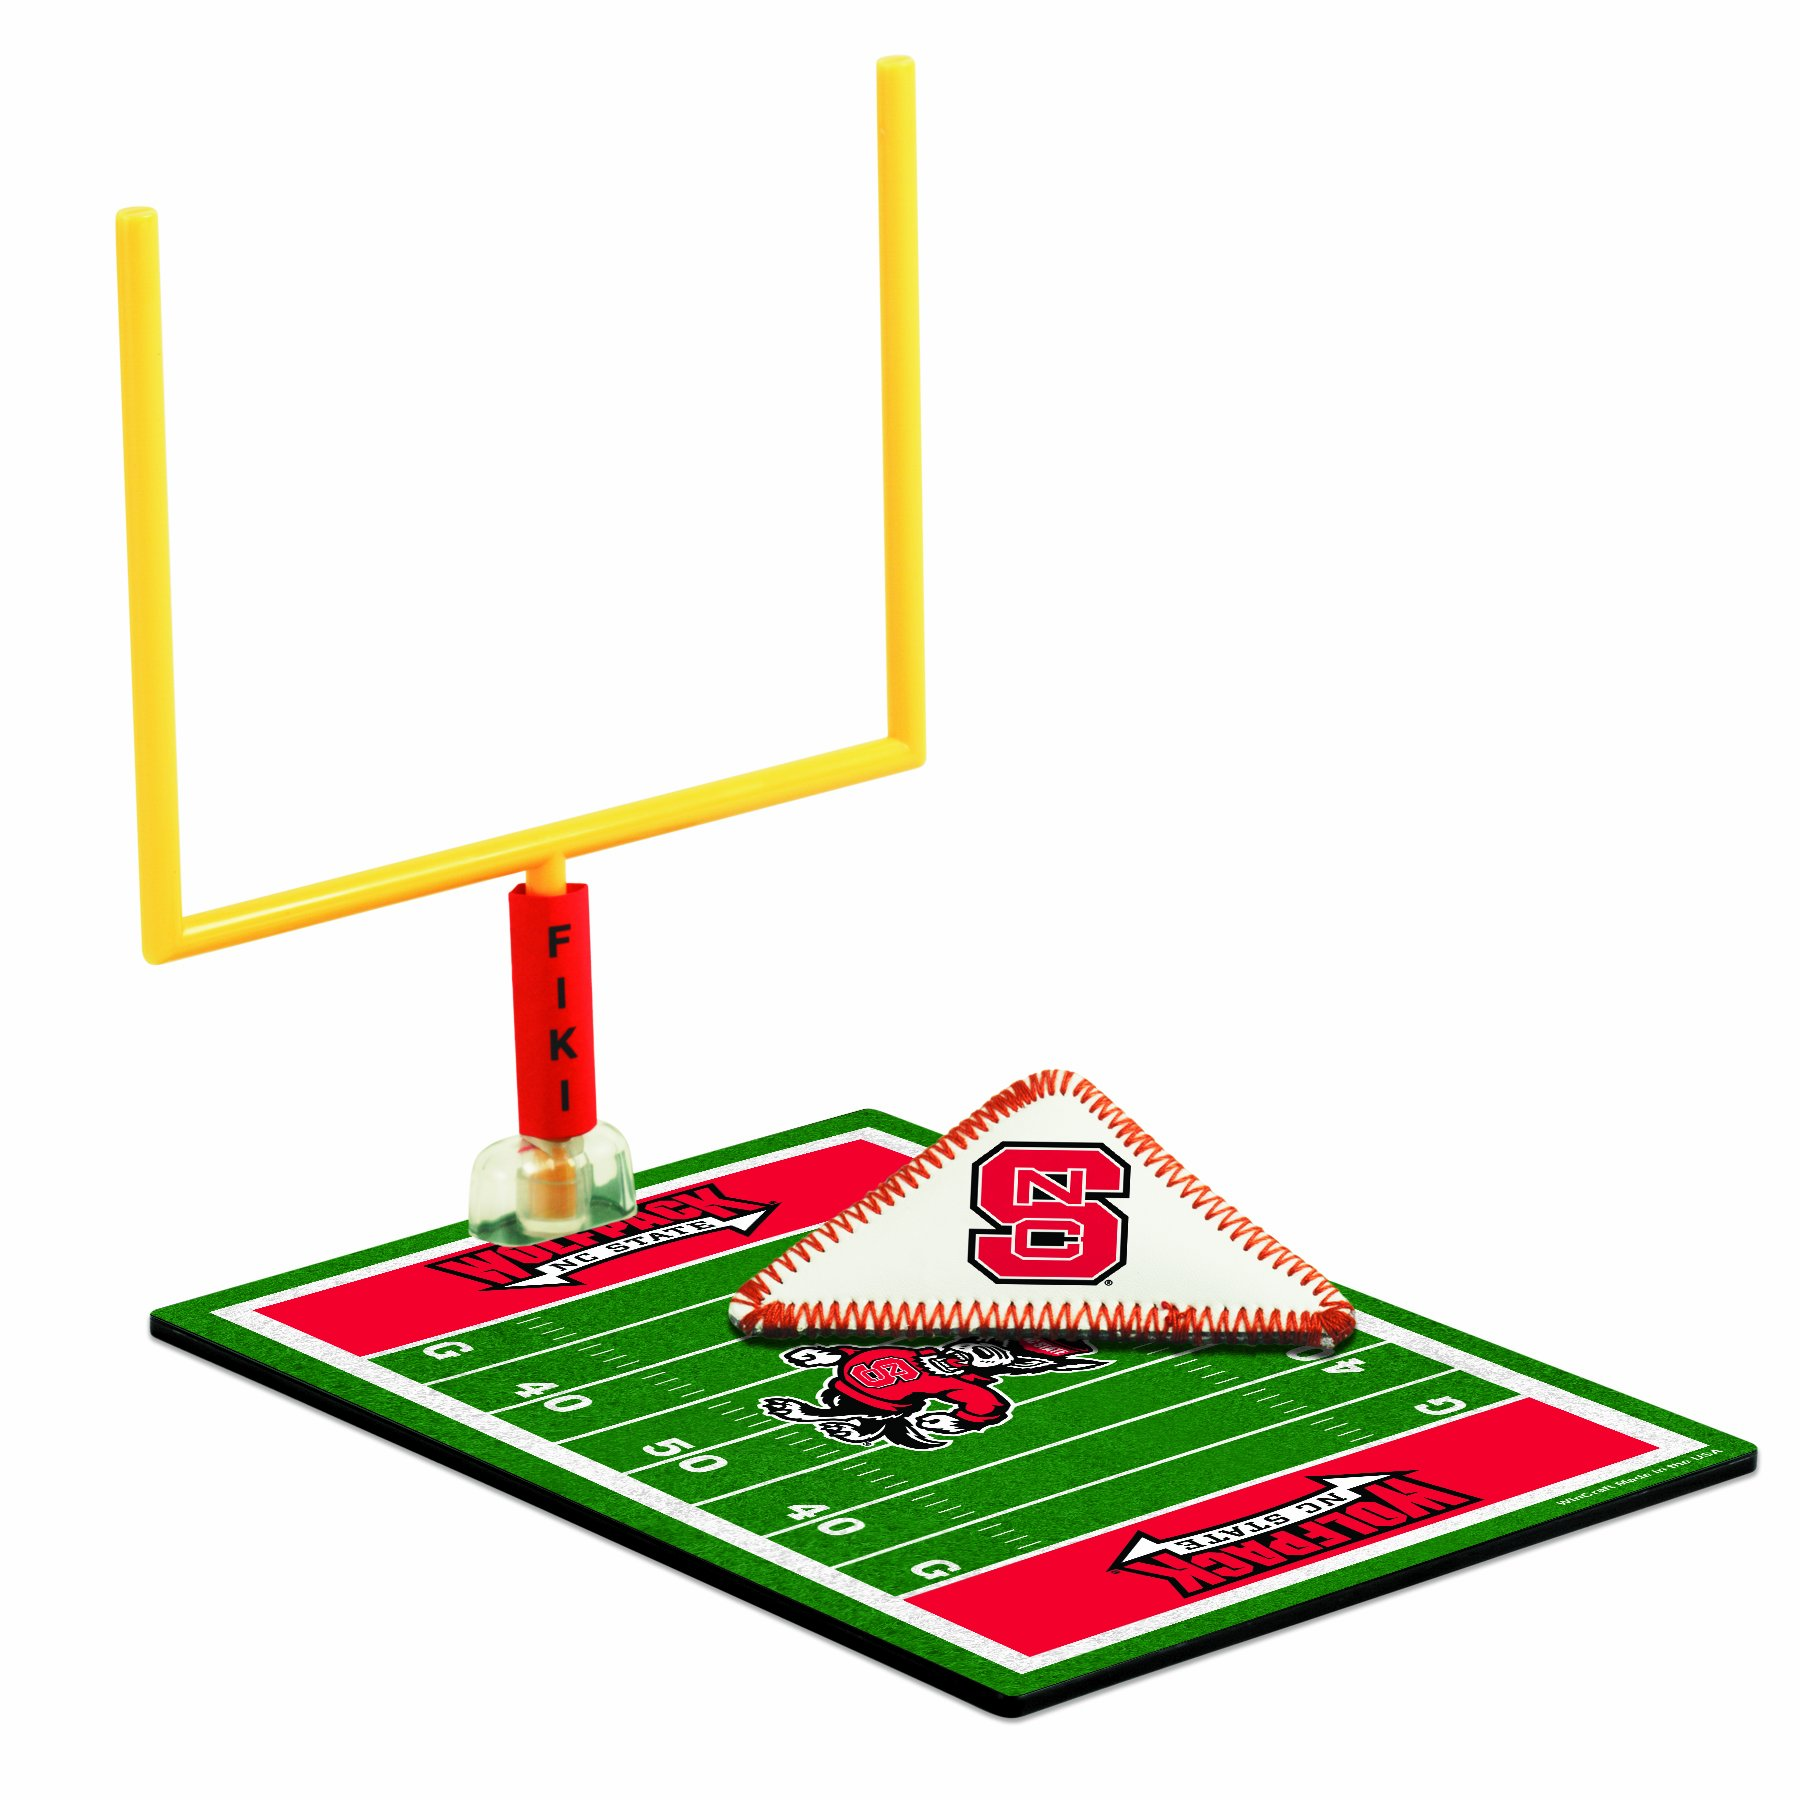 North Carolina State Wolfpack Tabletop Football Game